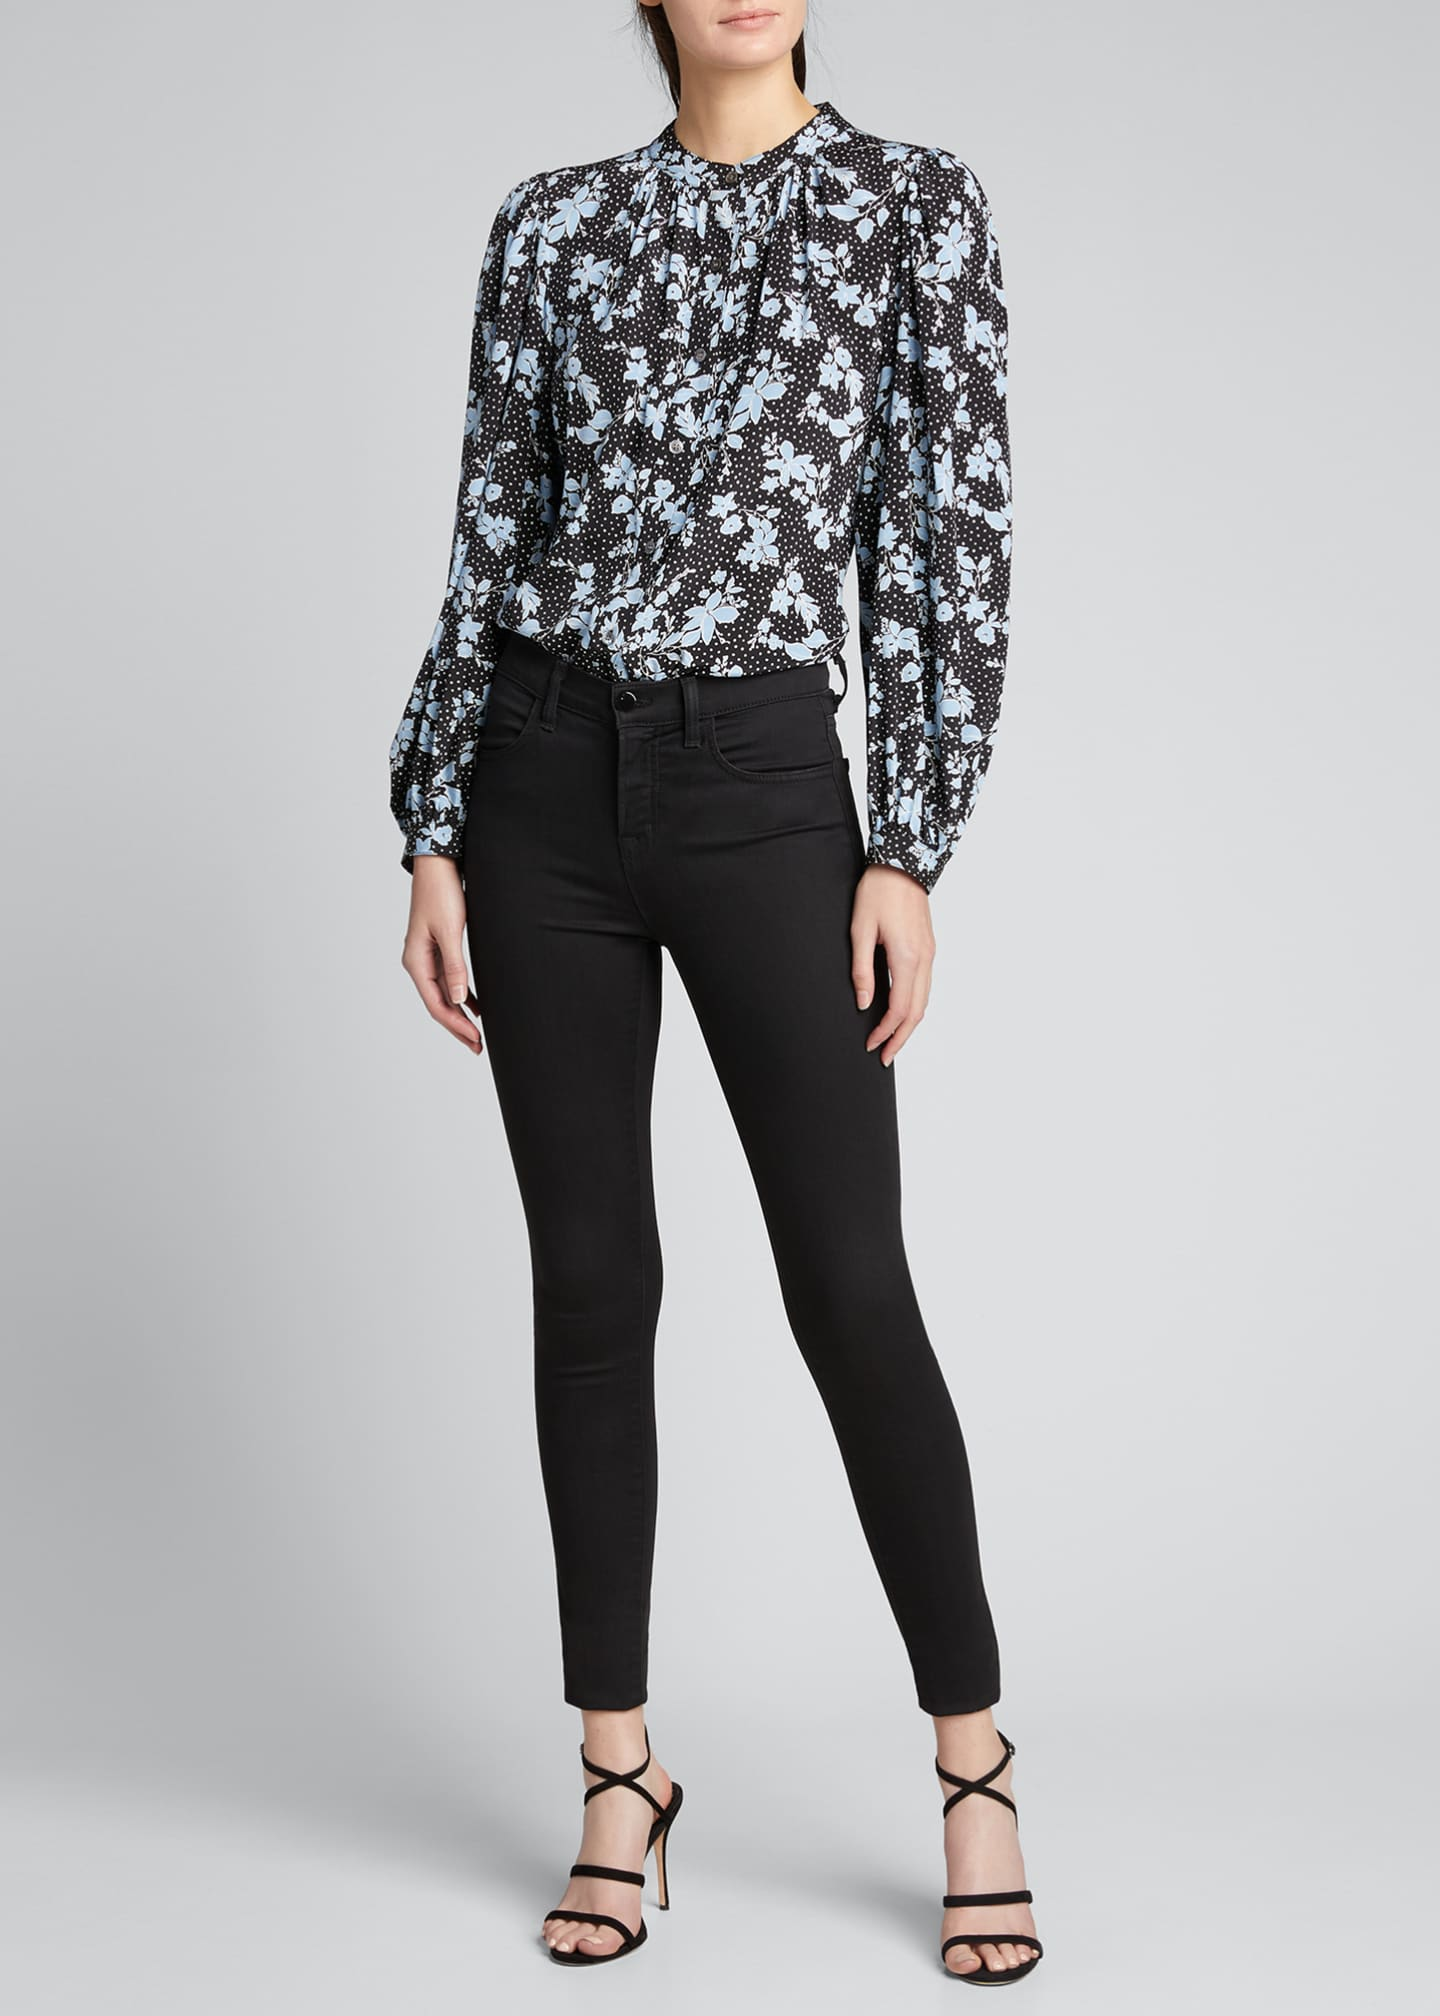 Image 1 of 5: Ashlynn Dotted Floral Print Blouse